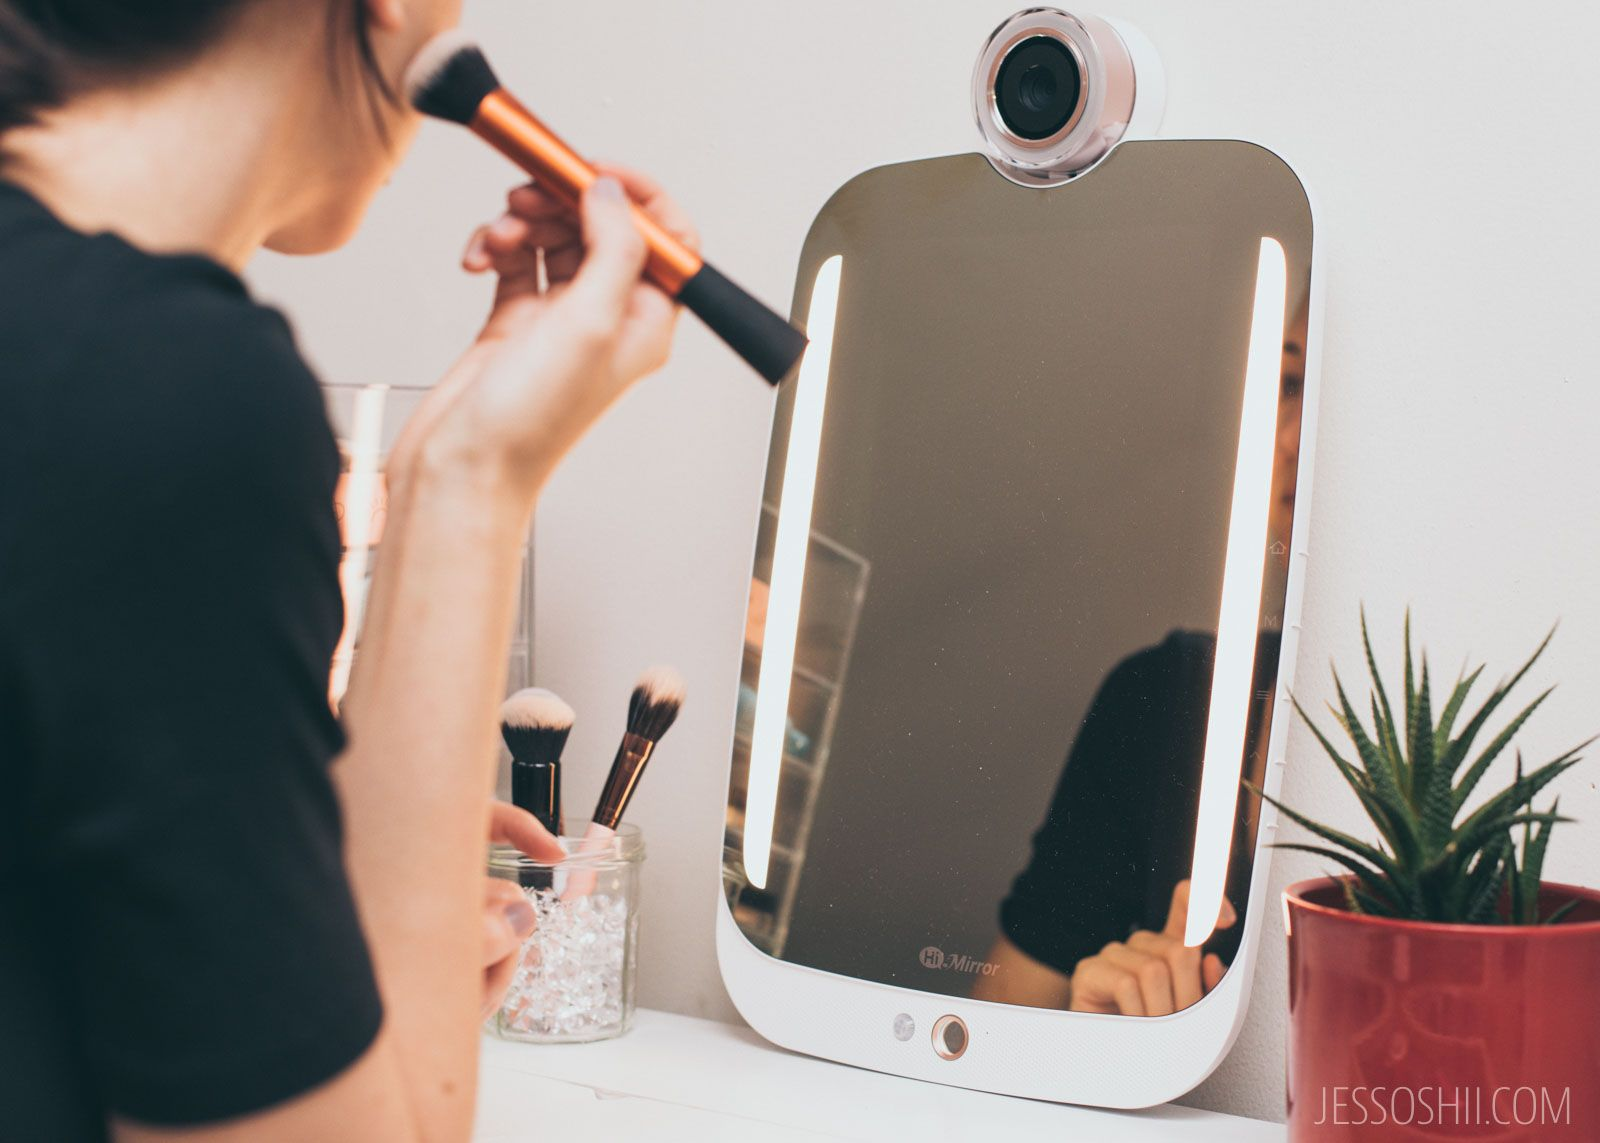 REVIEW HiMirror Plus & HiSkin Analyzer Beauty, It works